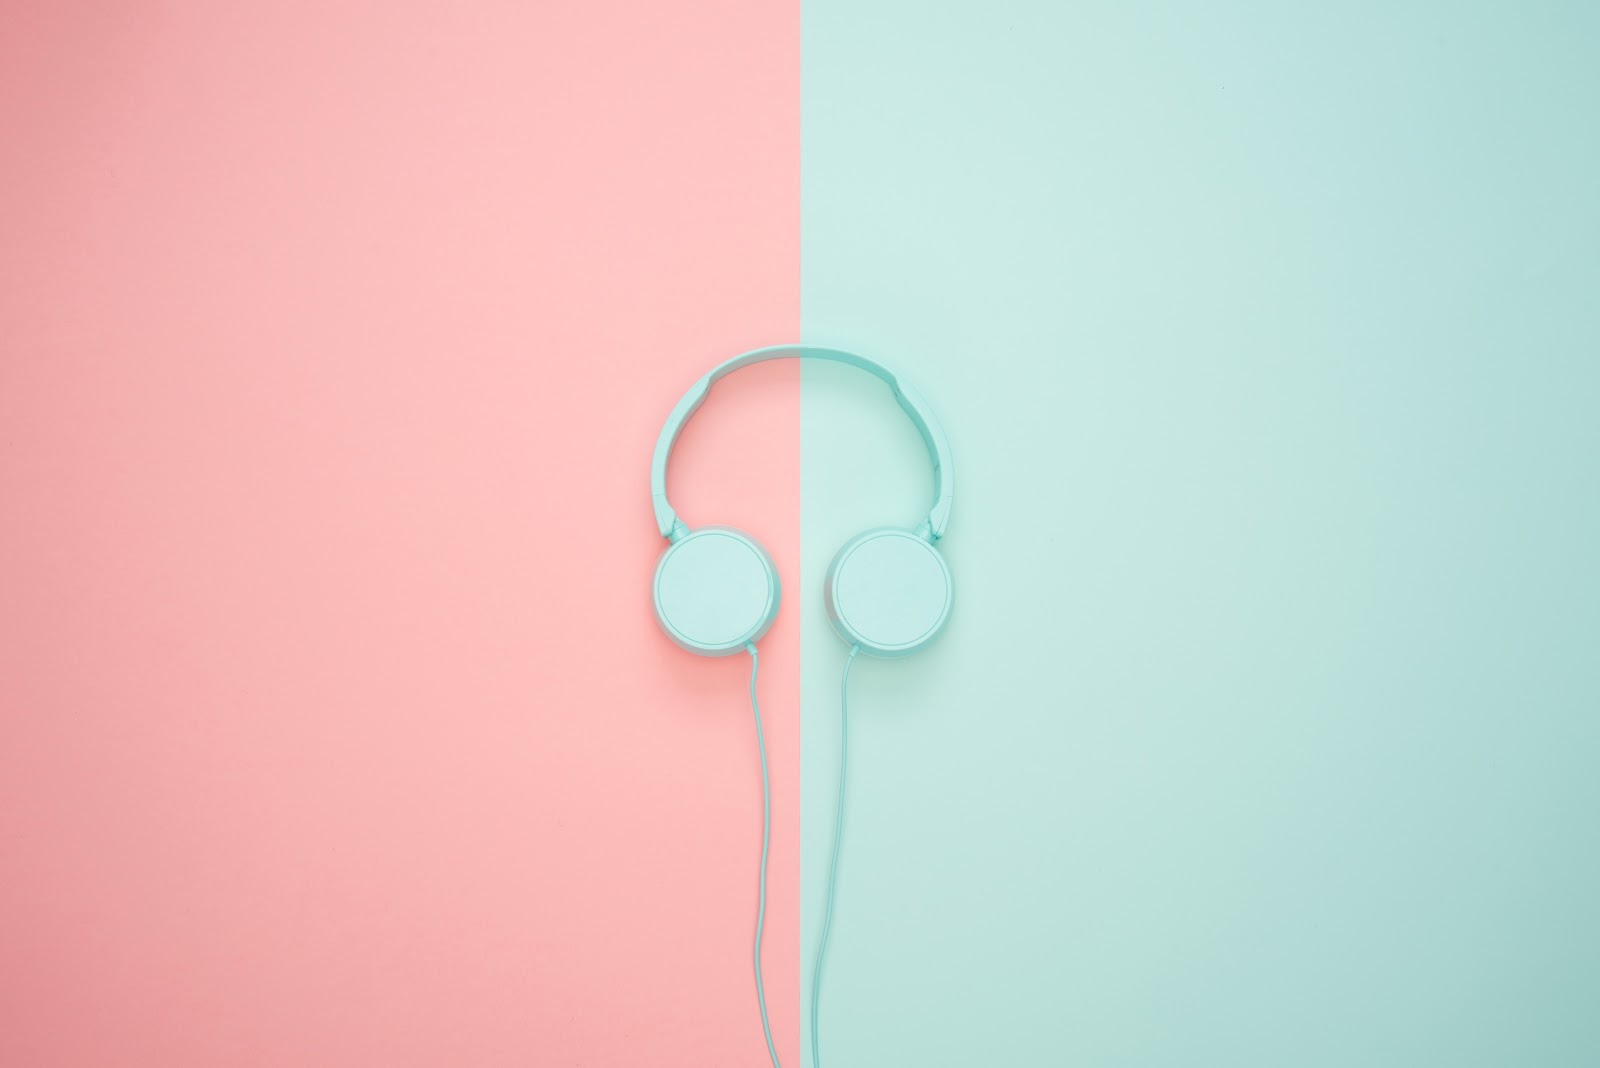 white-headphone-on green and pink background podcasts equipment